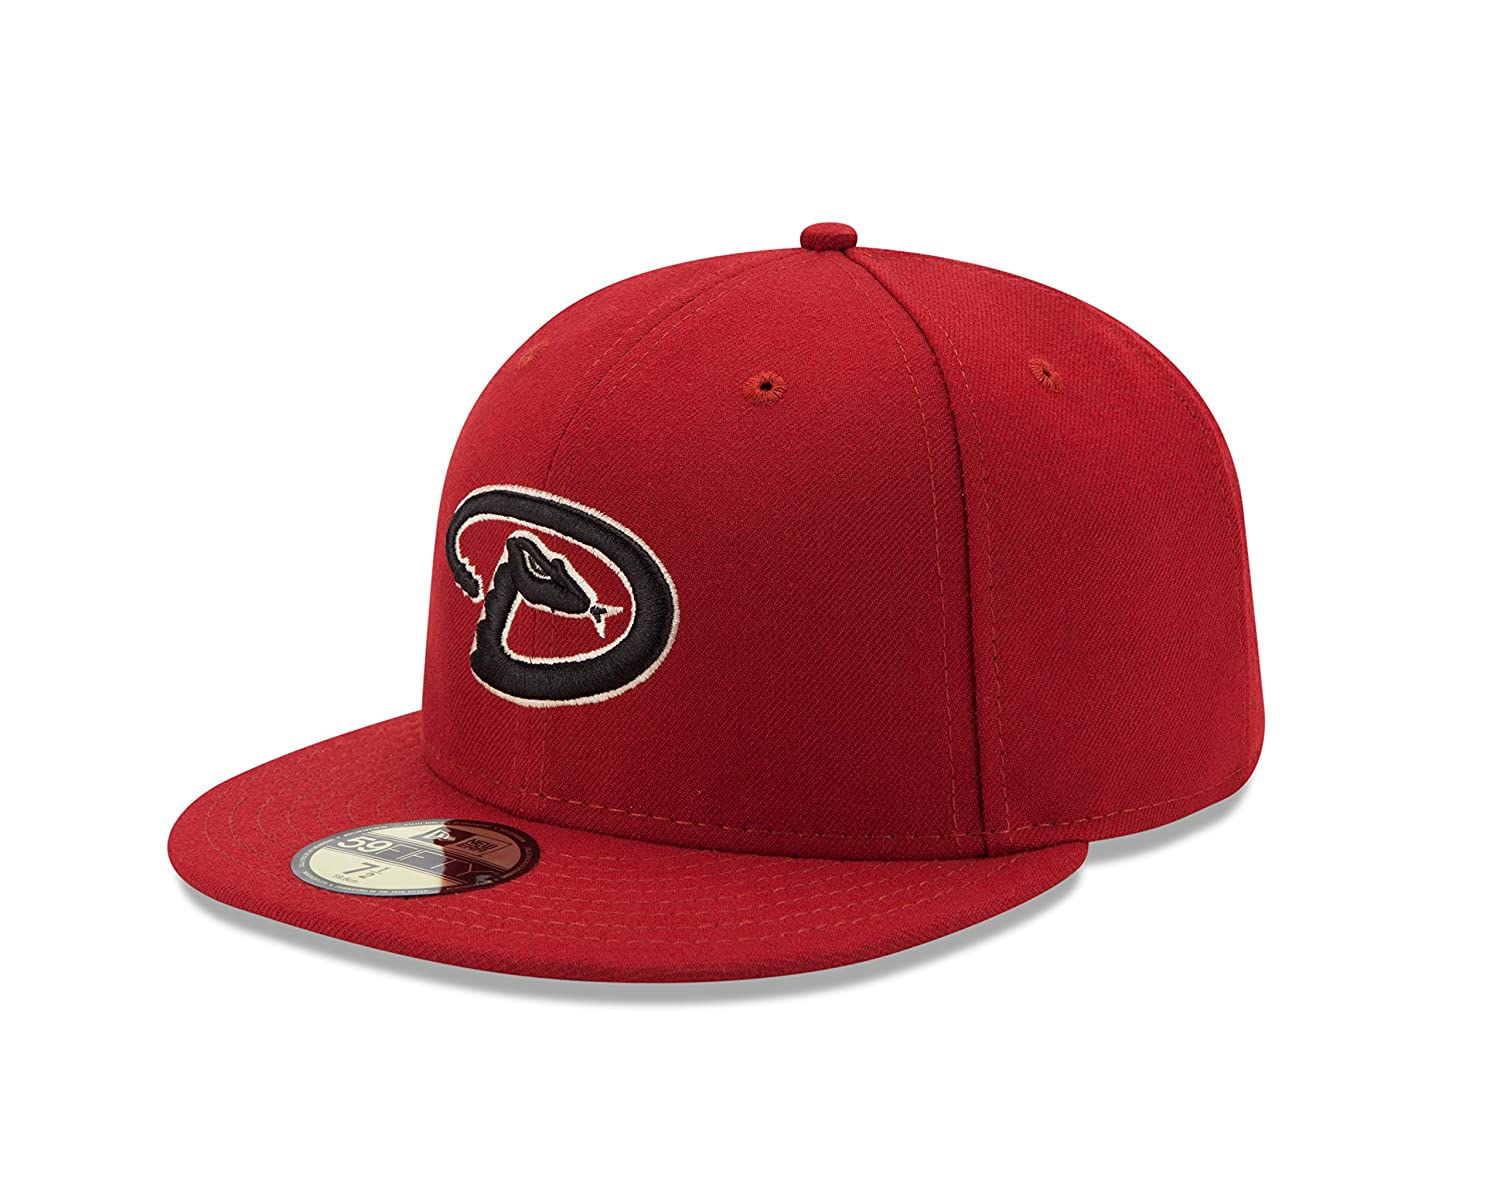 online store d1465 fcfb8 Amazon.com   New Era MLB Alt 2 Authentic Collection On Field 59FIFTY Fitted  Cap   Clothing